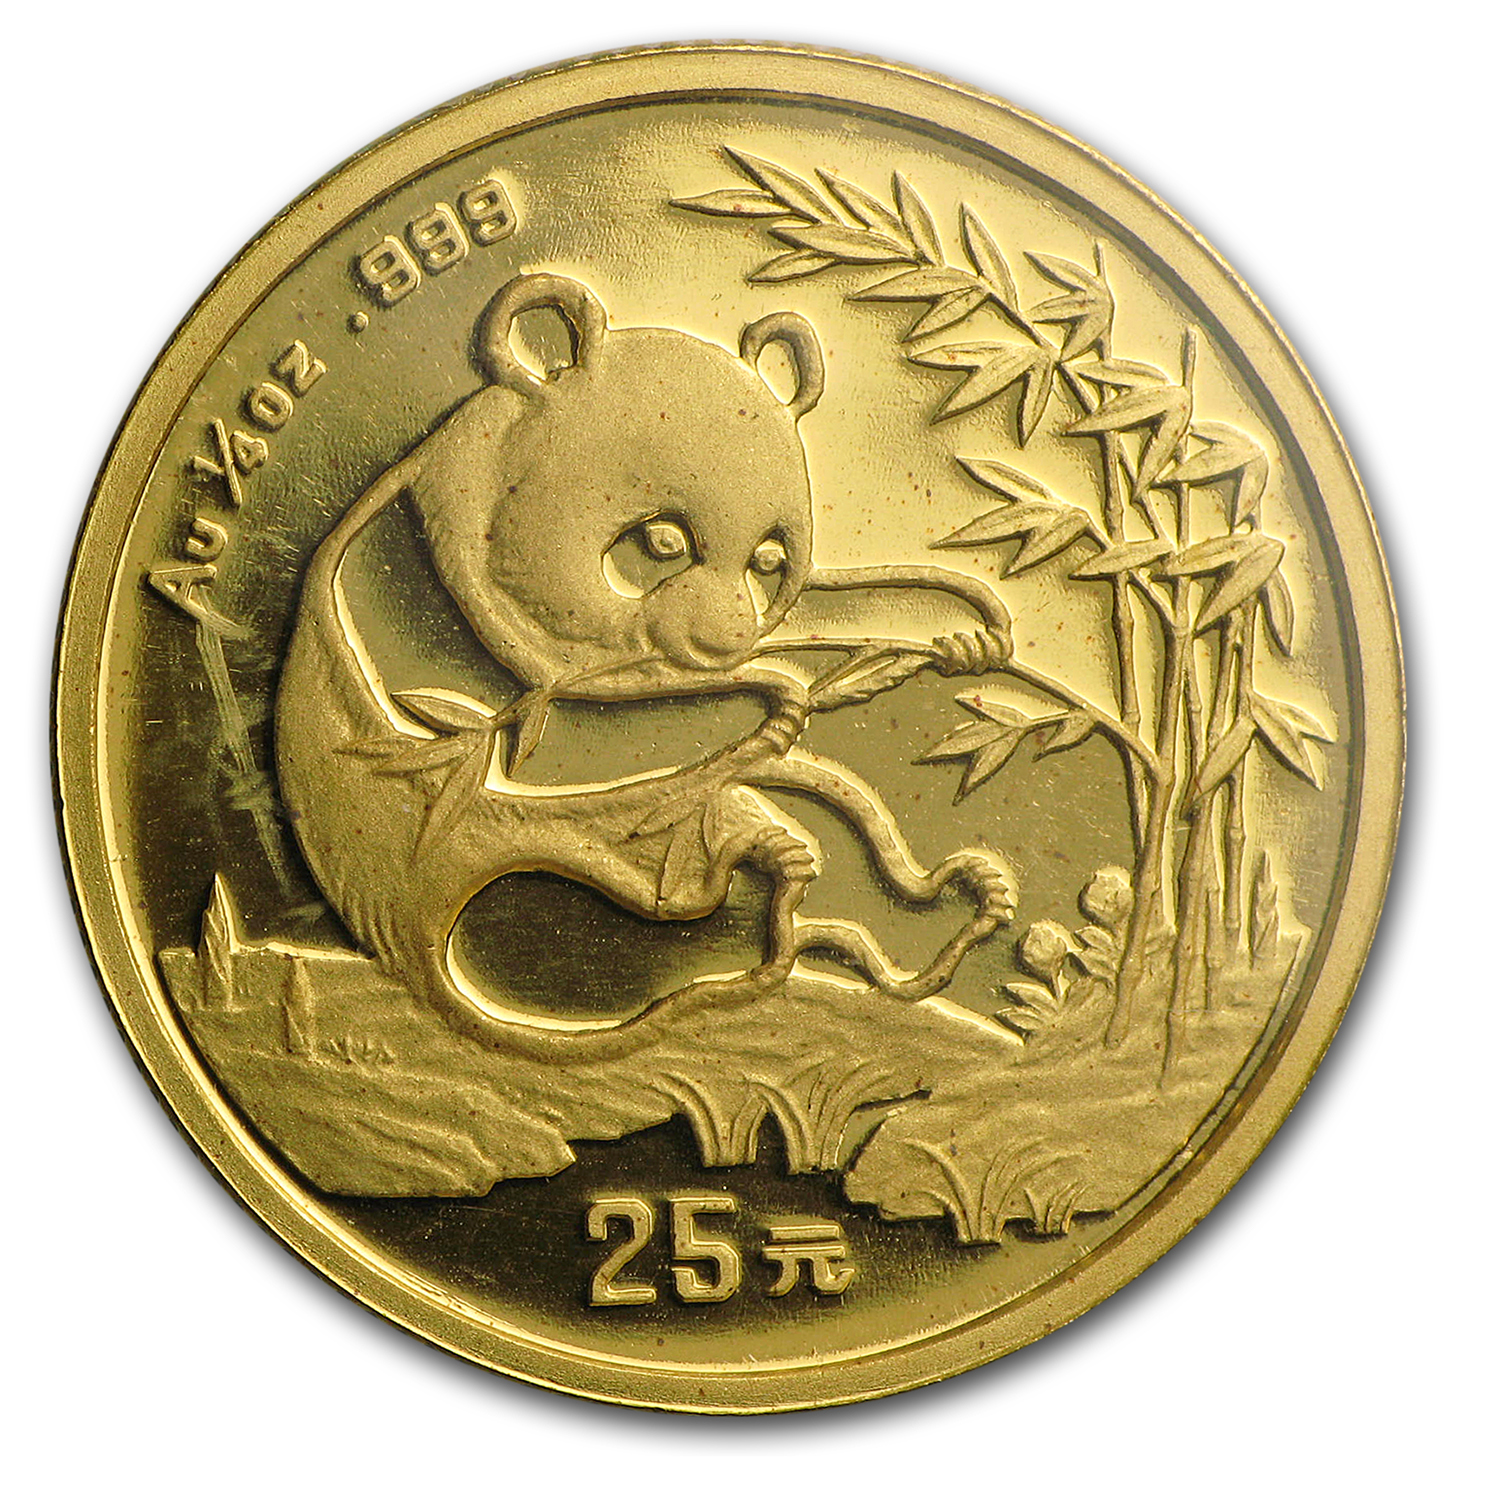 1994 1/4 oz Gold Chinese Panda Large Date BU (Sealed)